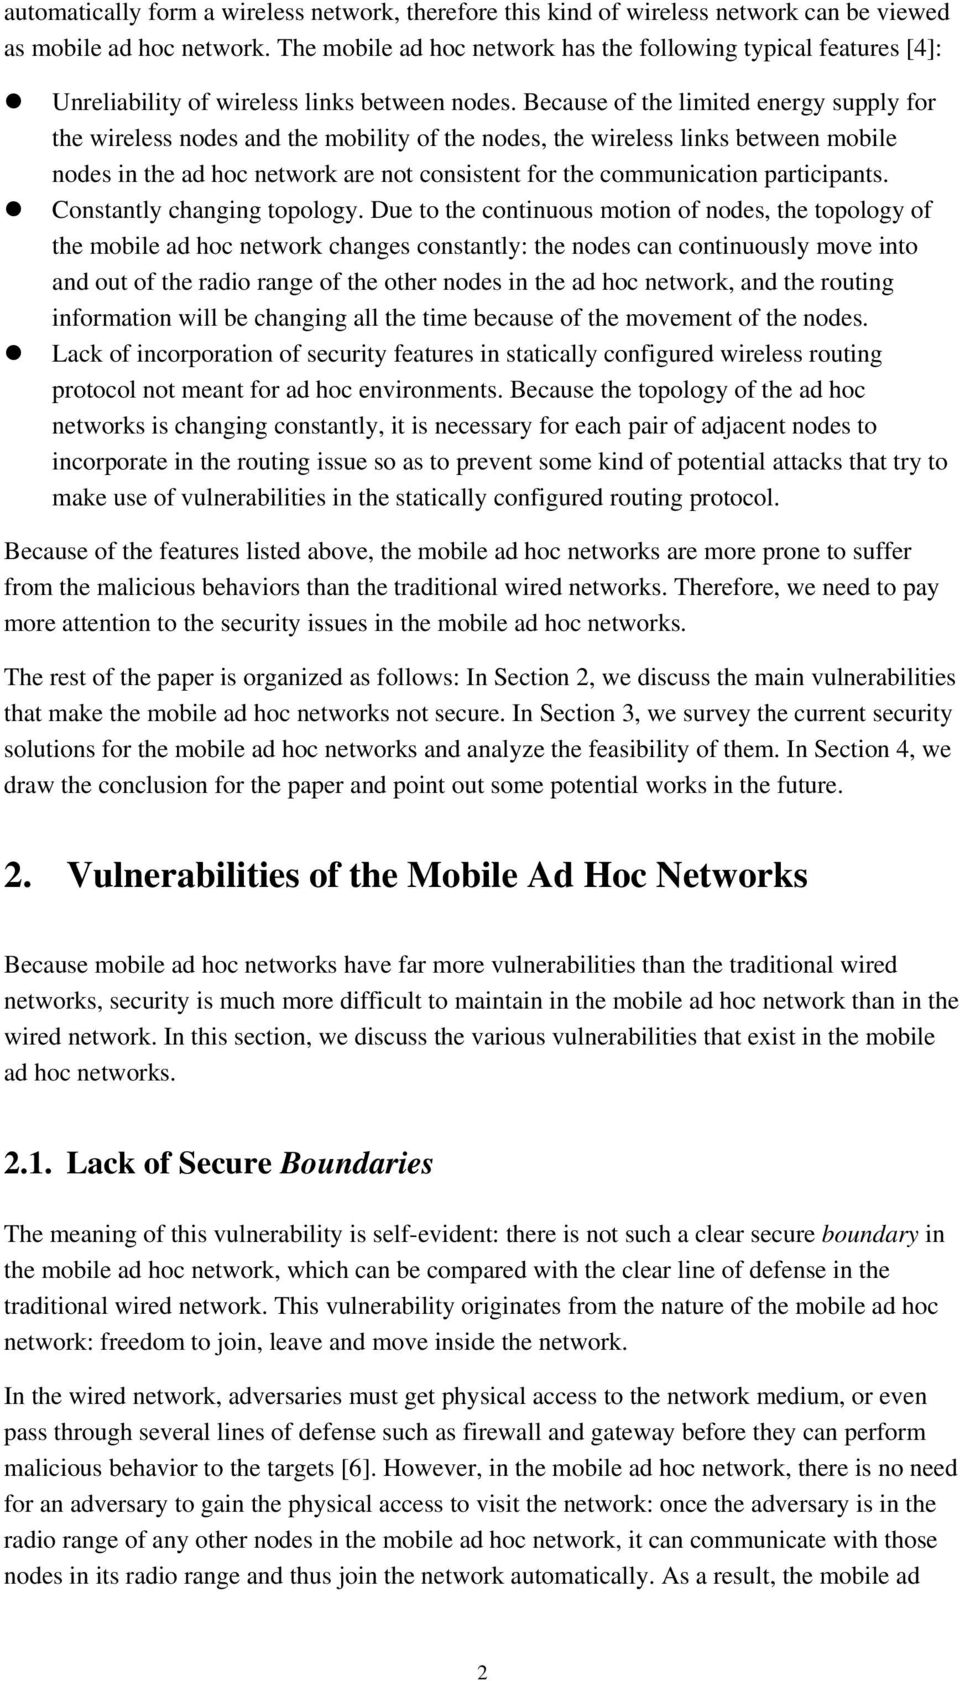 Because of the limited energy supply for the wireless nodes and the mobility of the nodes, the wireless links between mobile nodes in the ad hoc network are not consistent for the communication